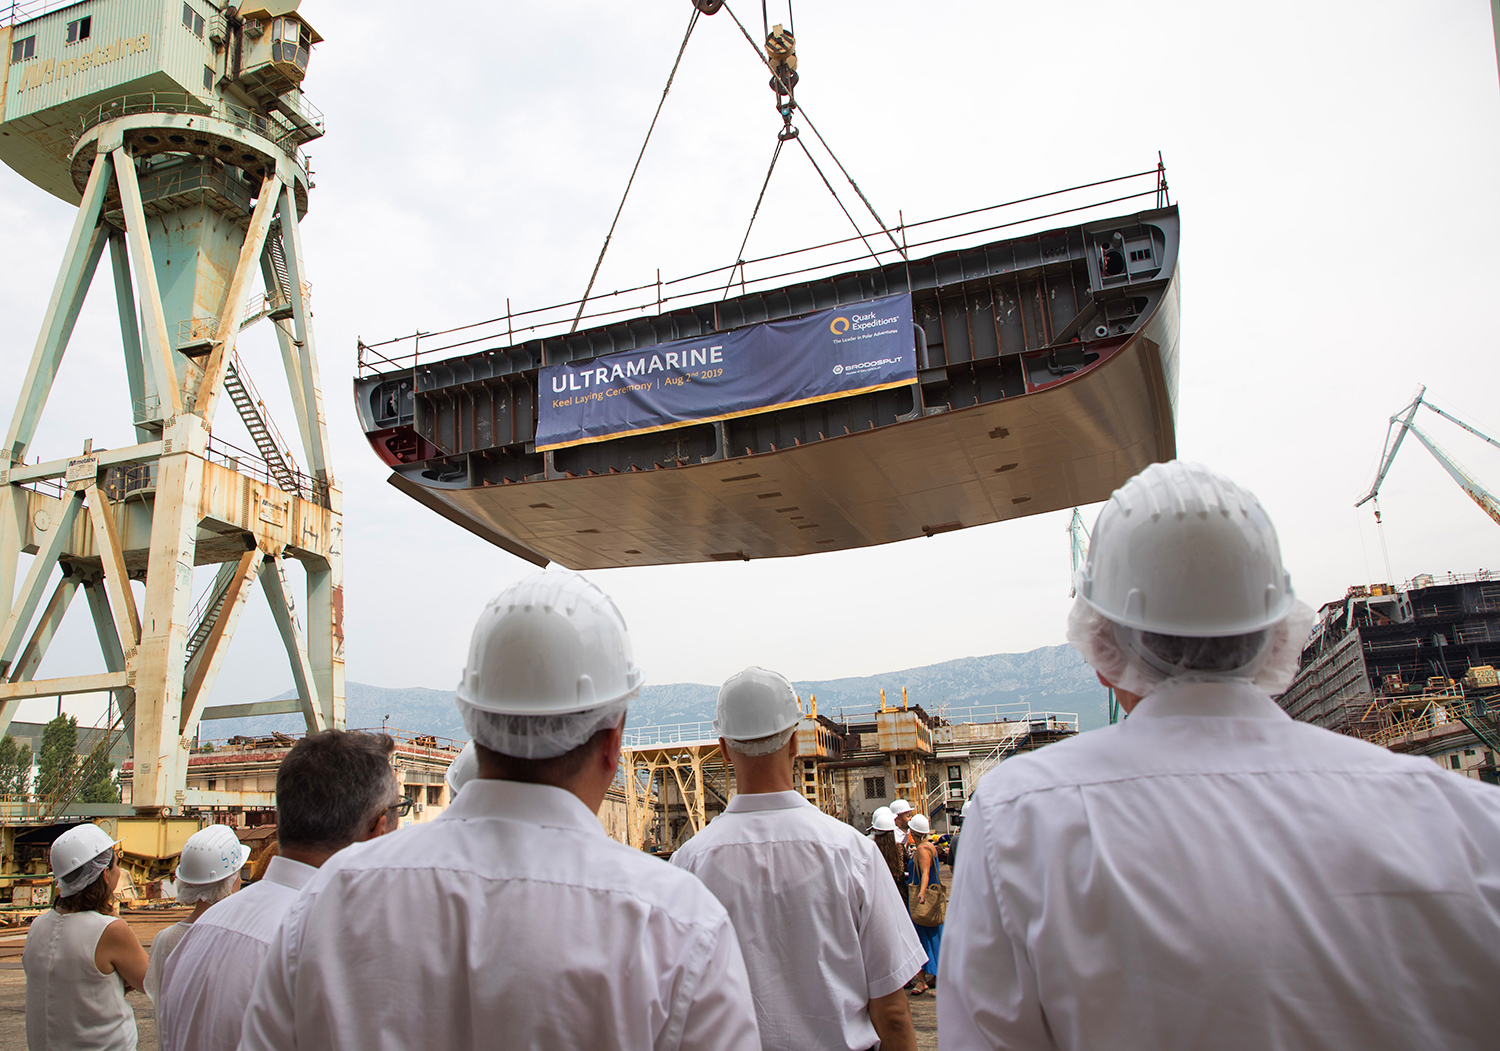 Invited guests watch as the keel of Ultramarine is lowered into place for the ceremony